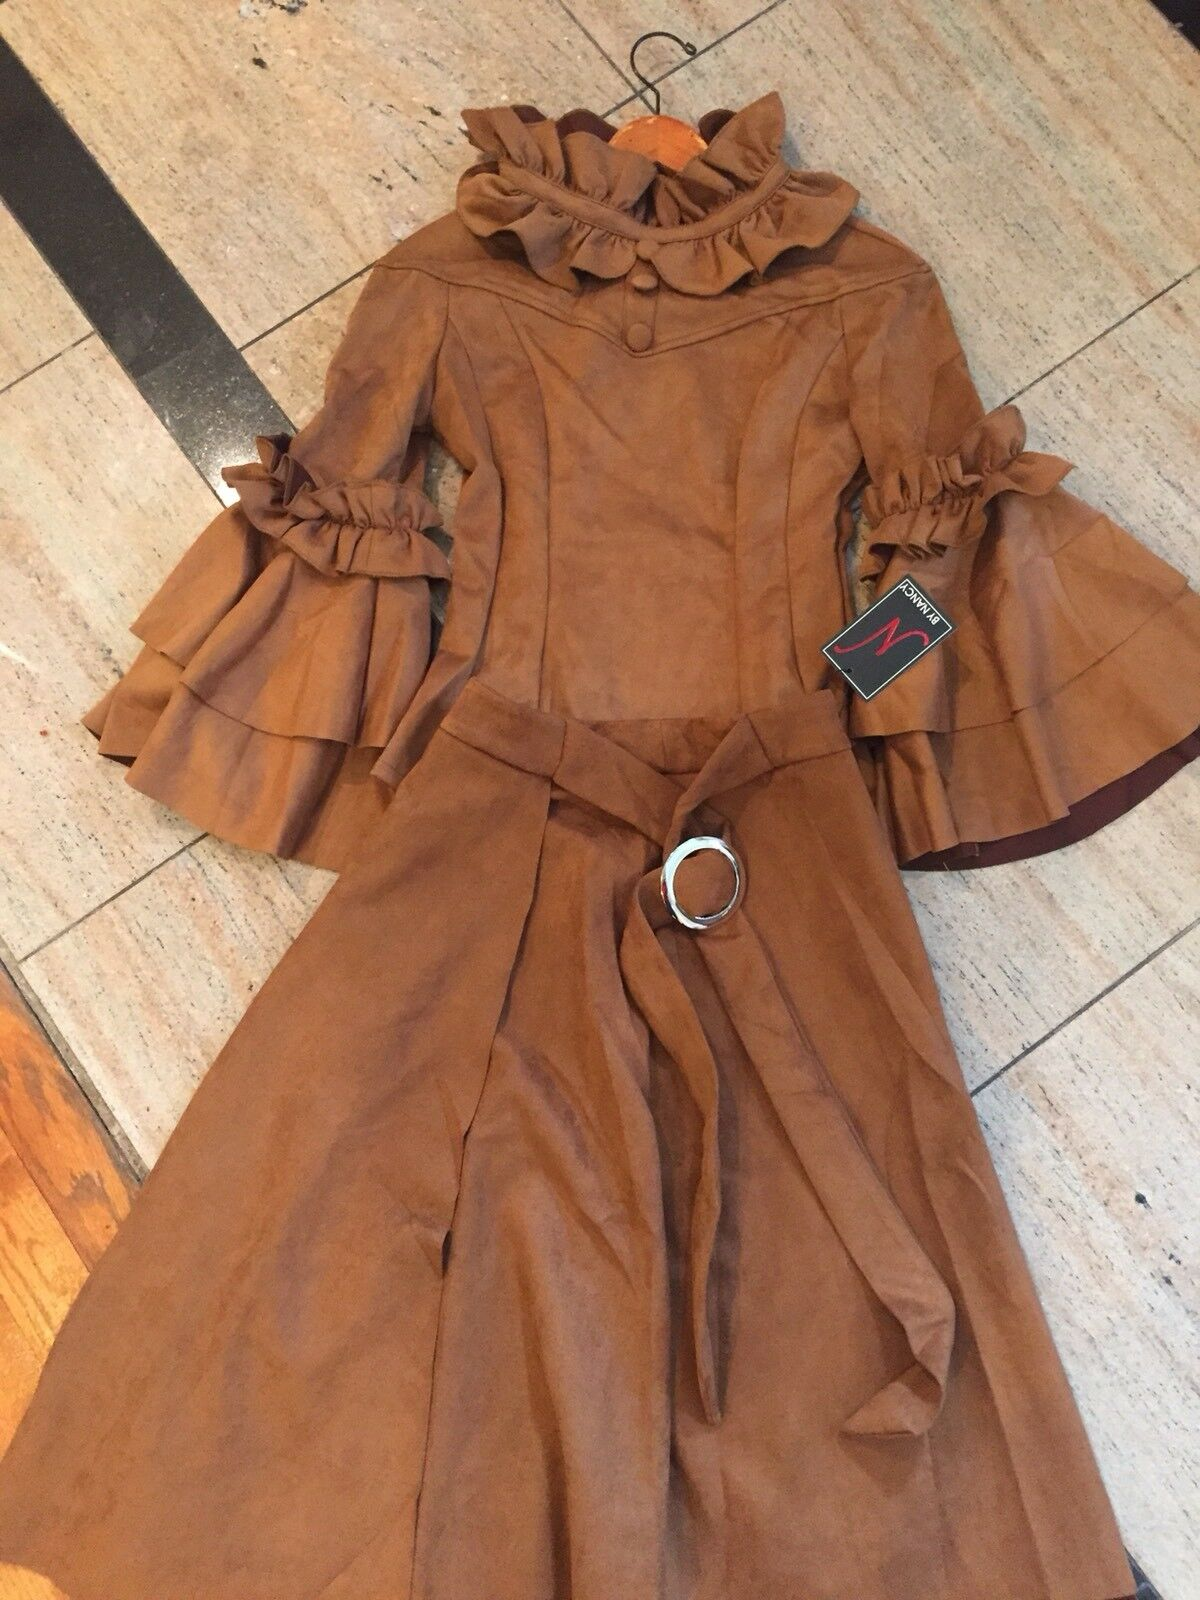 NEW Womens GORGEOUS Suede Camel 2 Piece Outfit ,size S